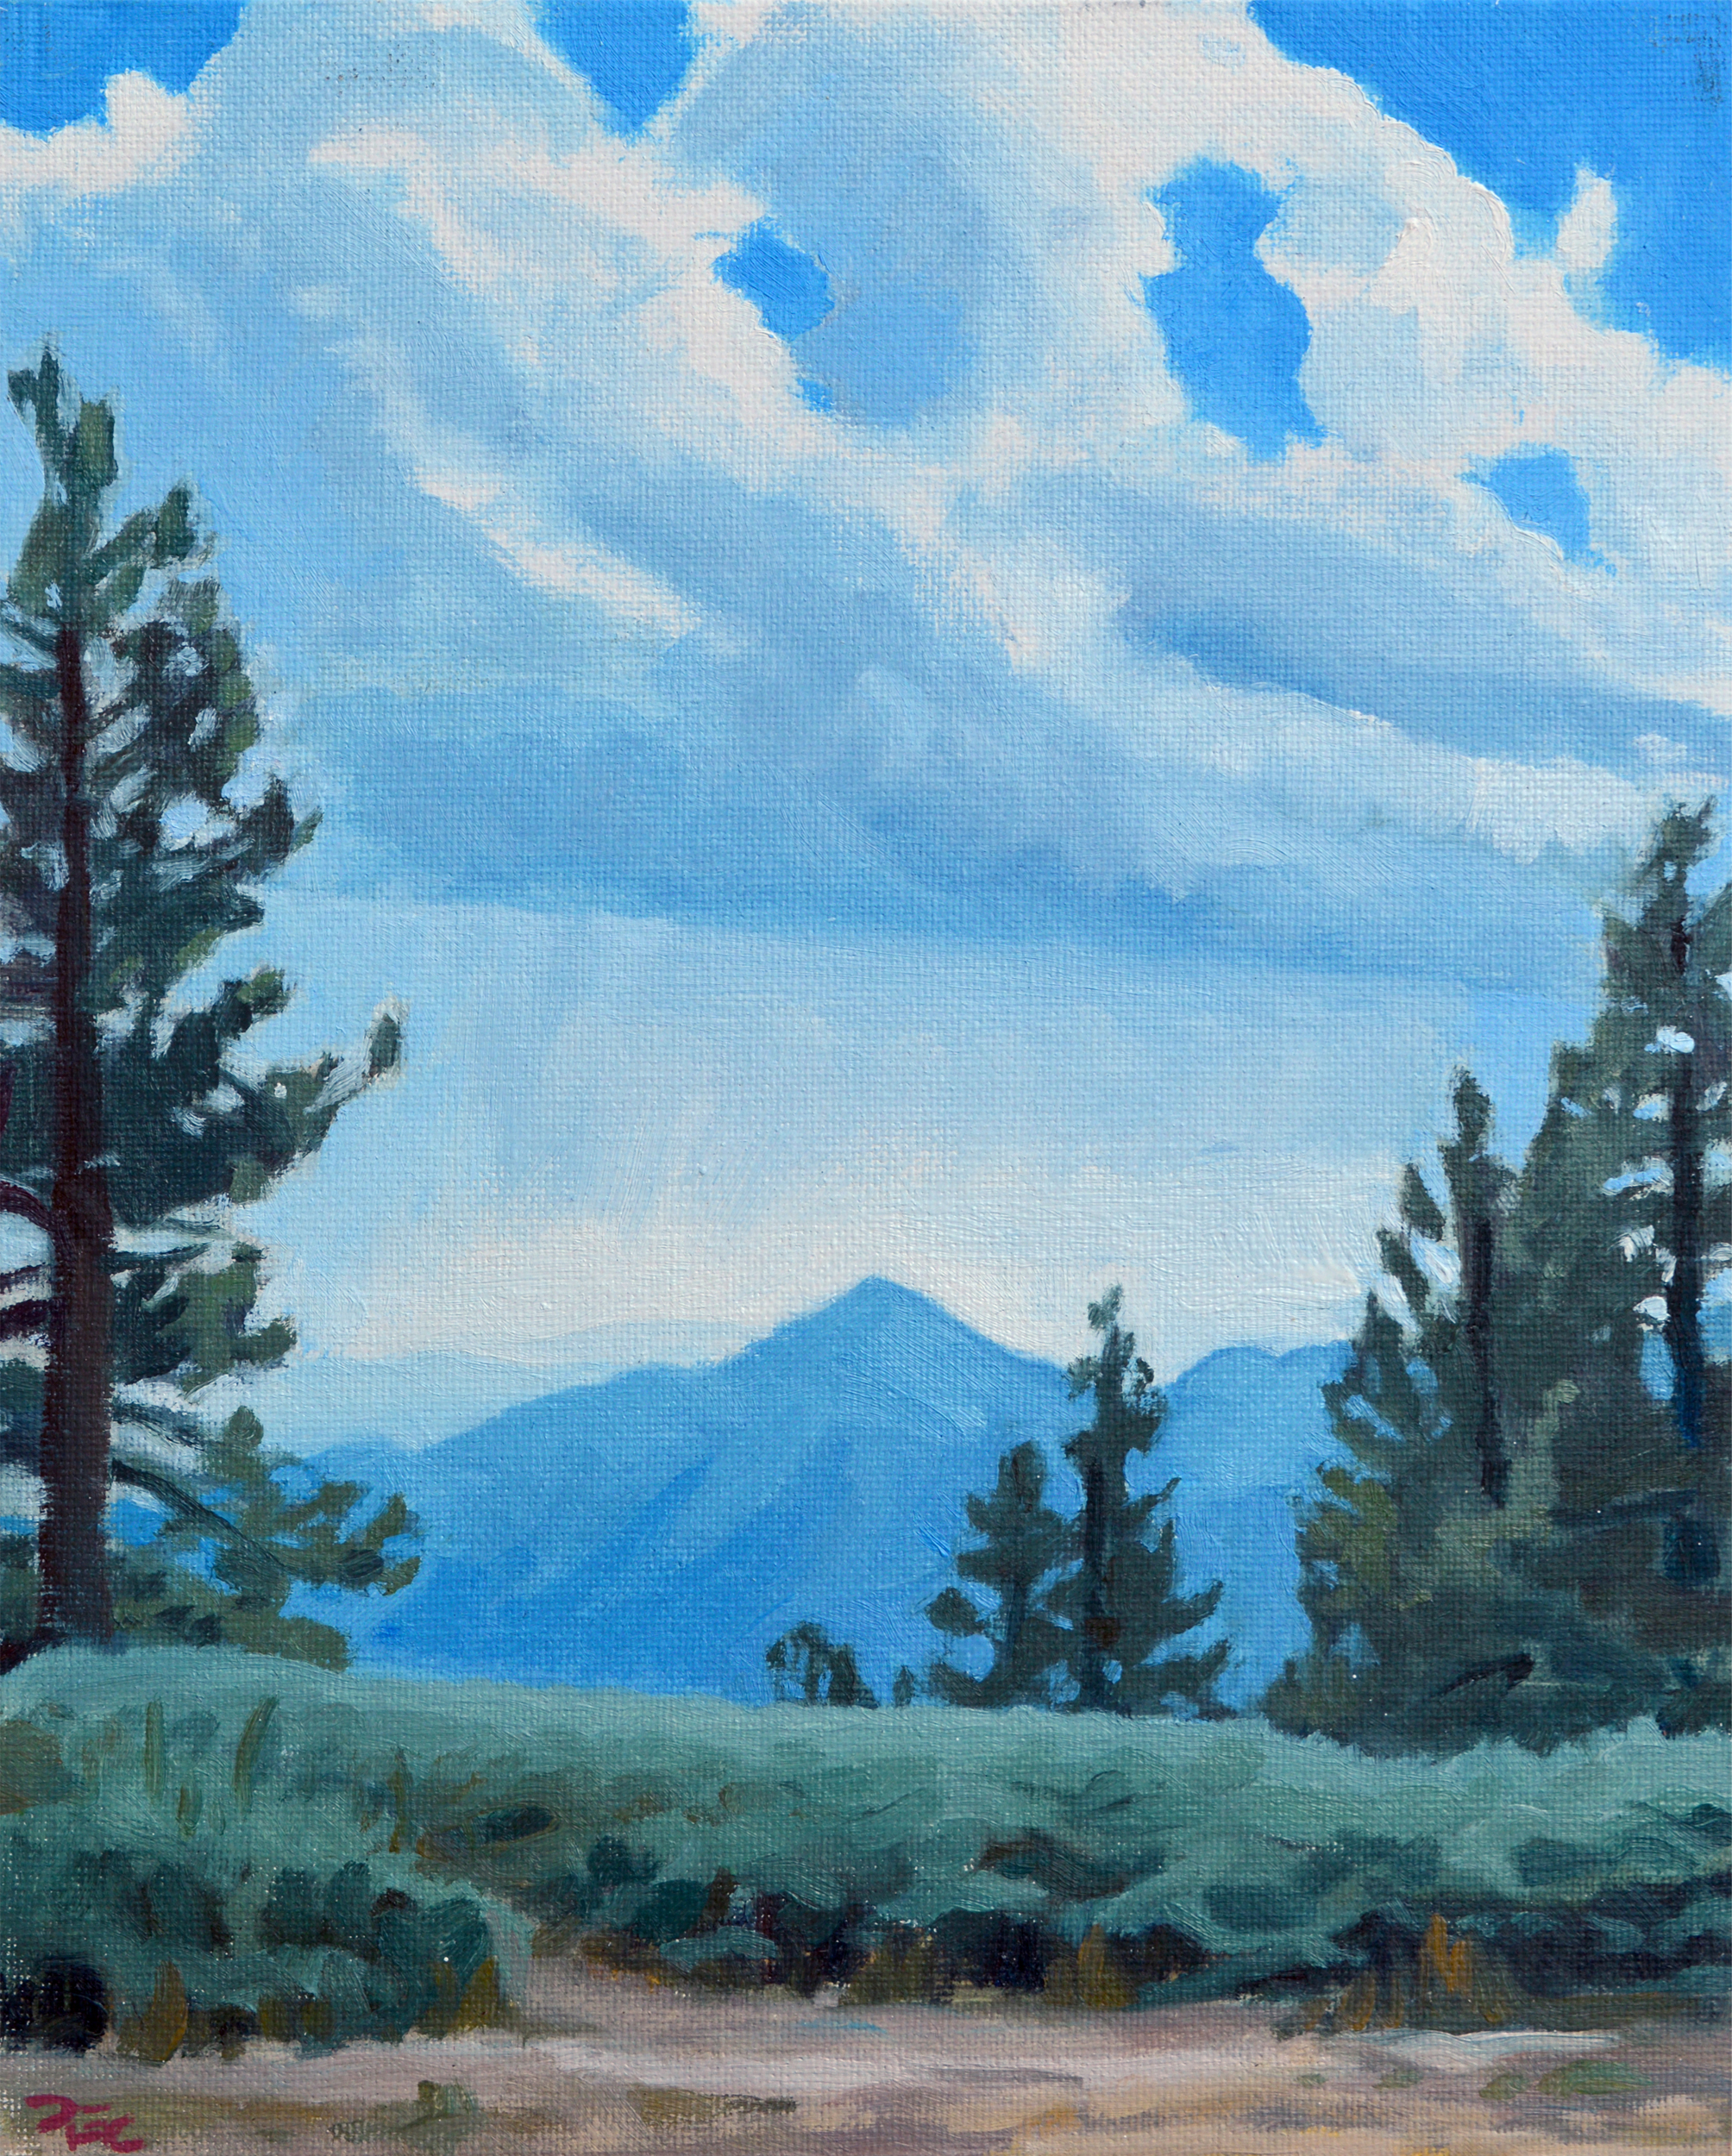 Monsoon over Wrightwood,  8 x 10 in.  Oil on canvas. In the collection of the National Park Service. (2017)